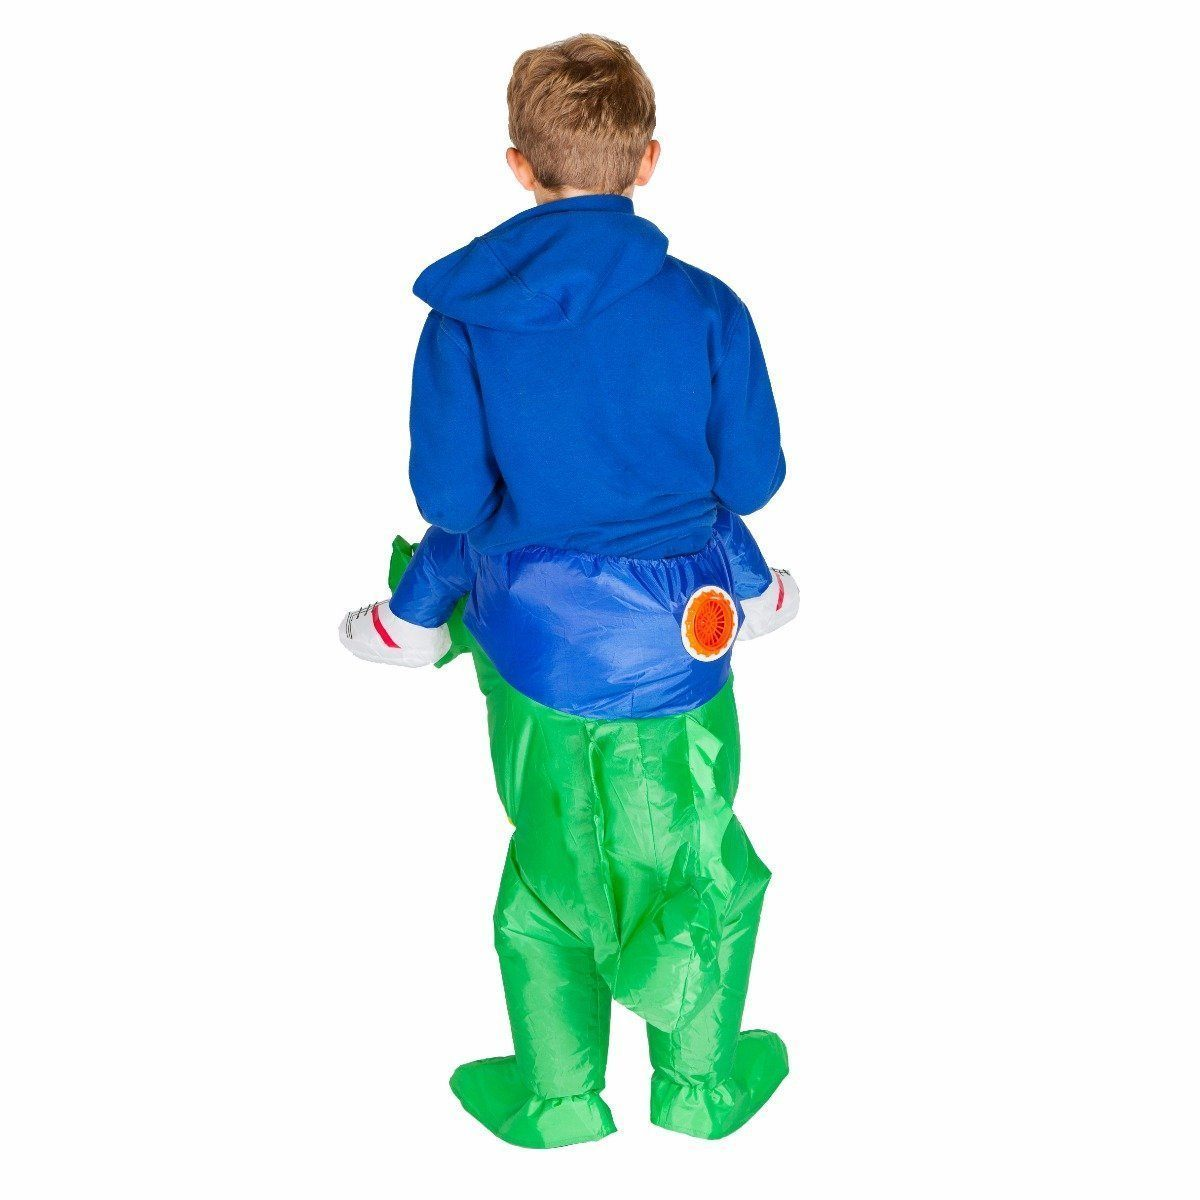 Fancy Dress - Kids Inflatable Crocodile Costume